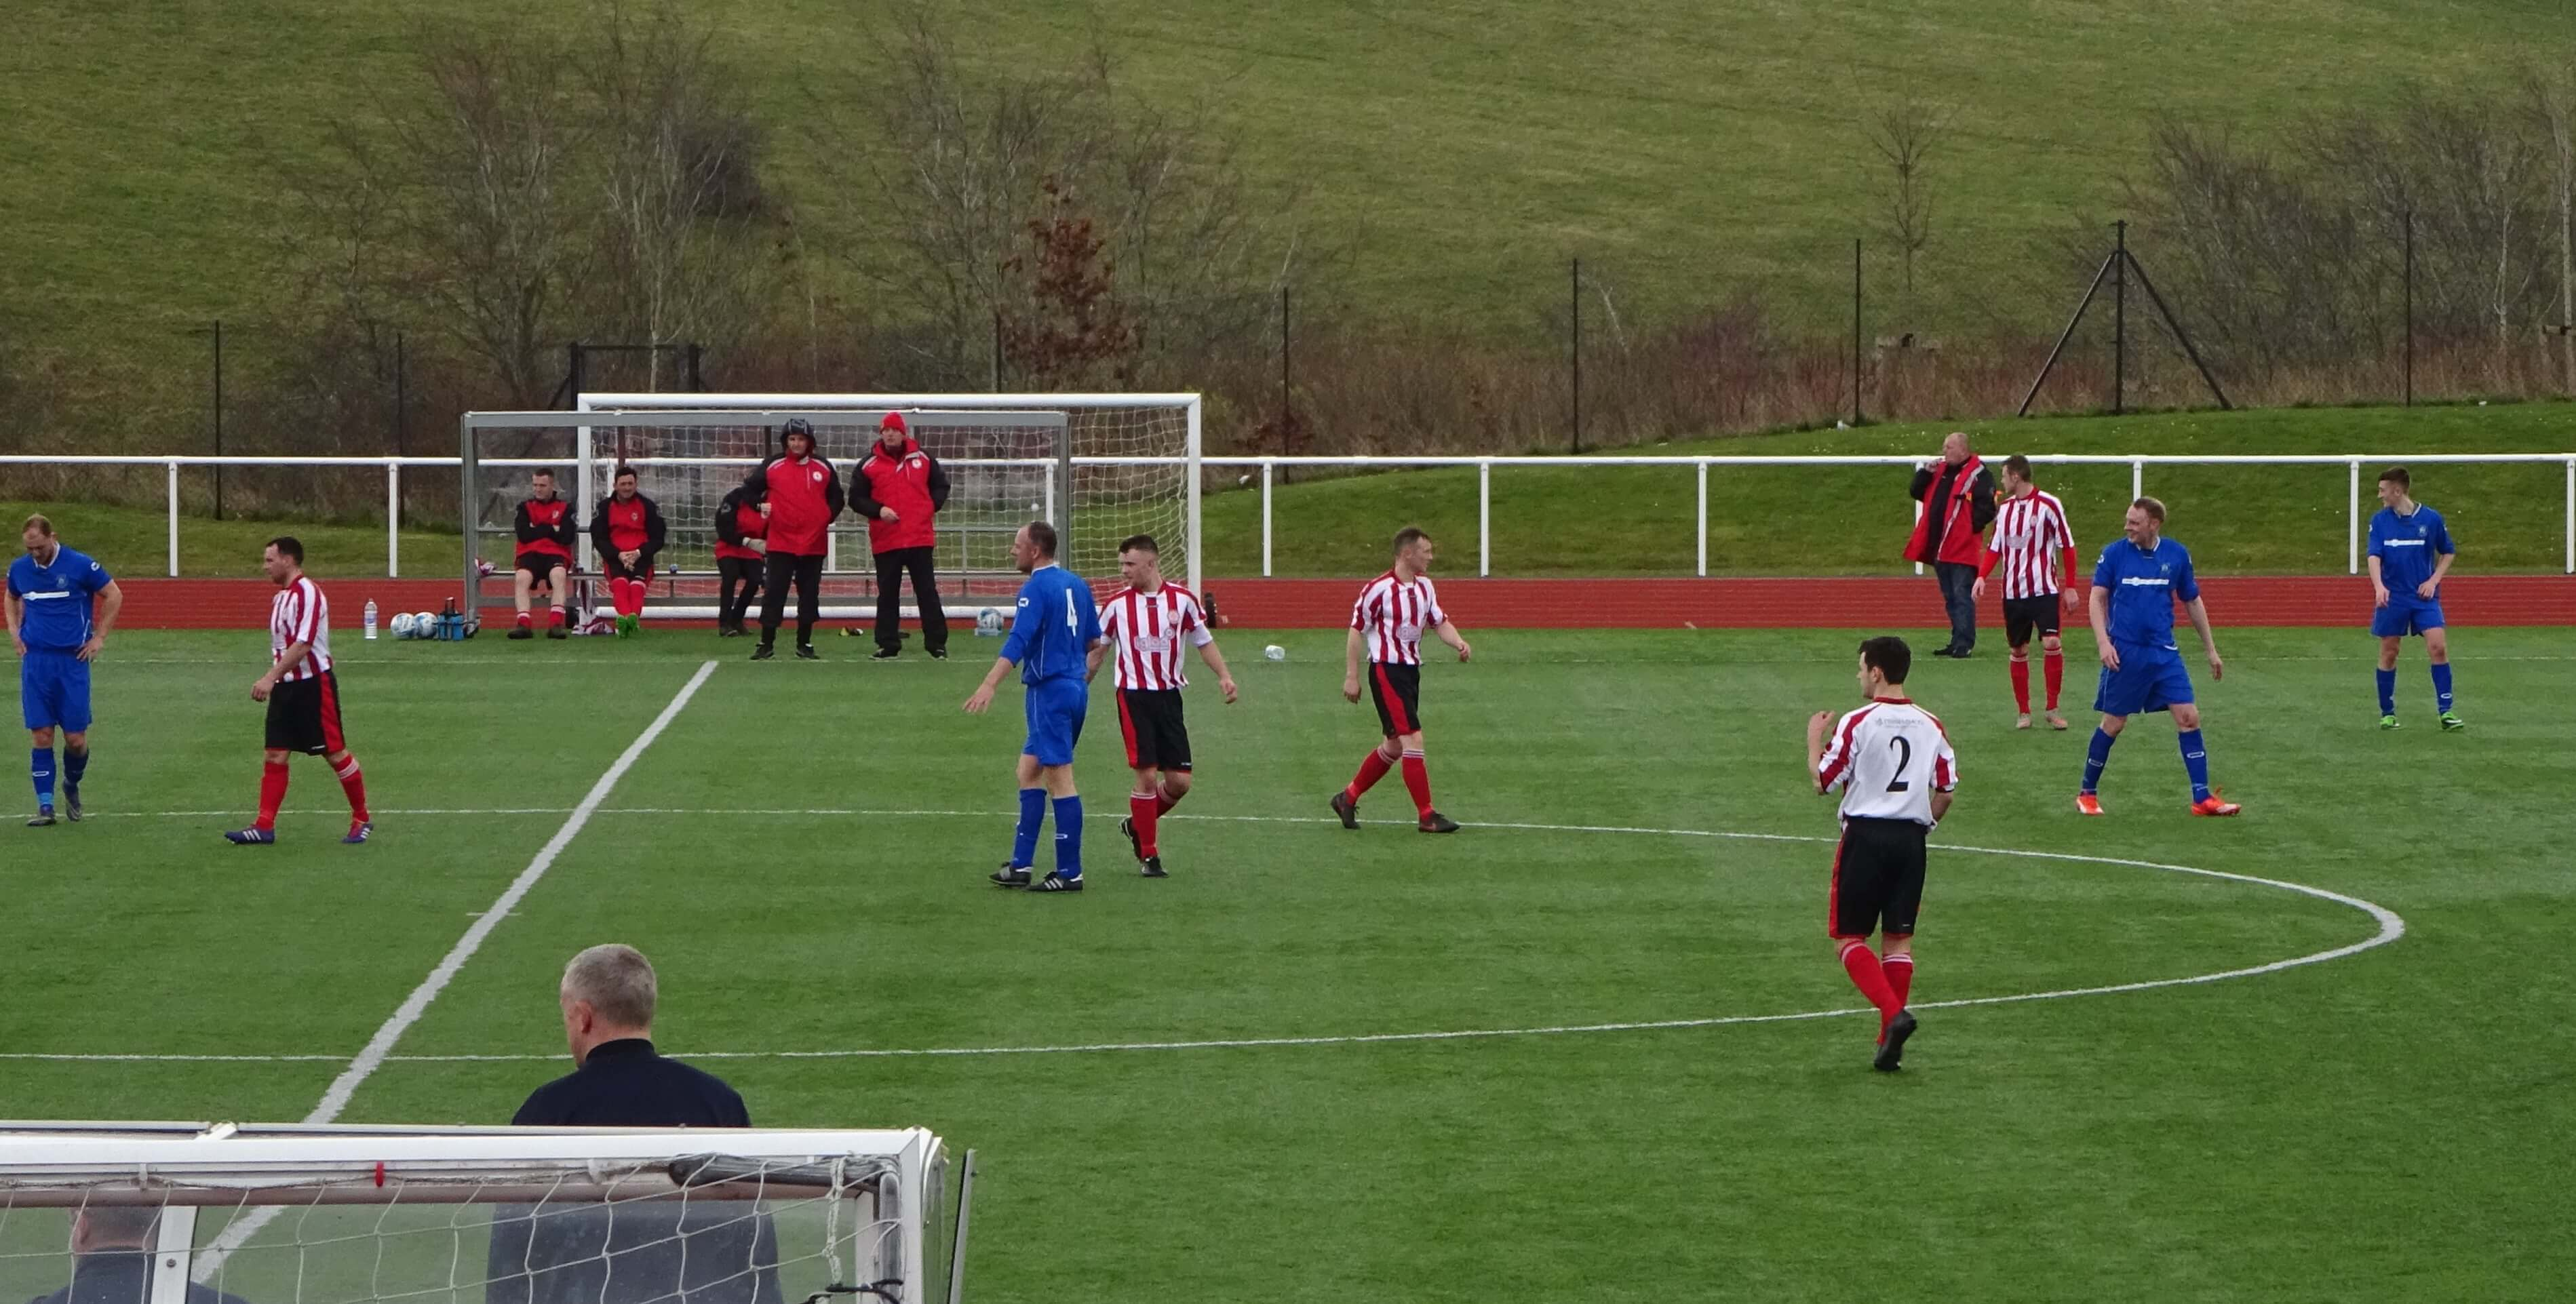 Carluke Rovers v Larkhall Thistle 2 April 2016 - summary